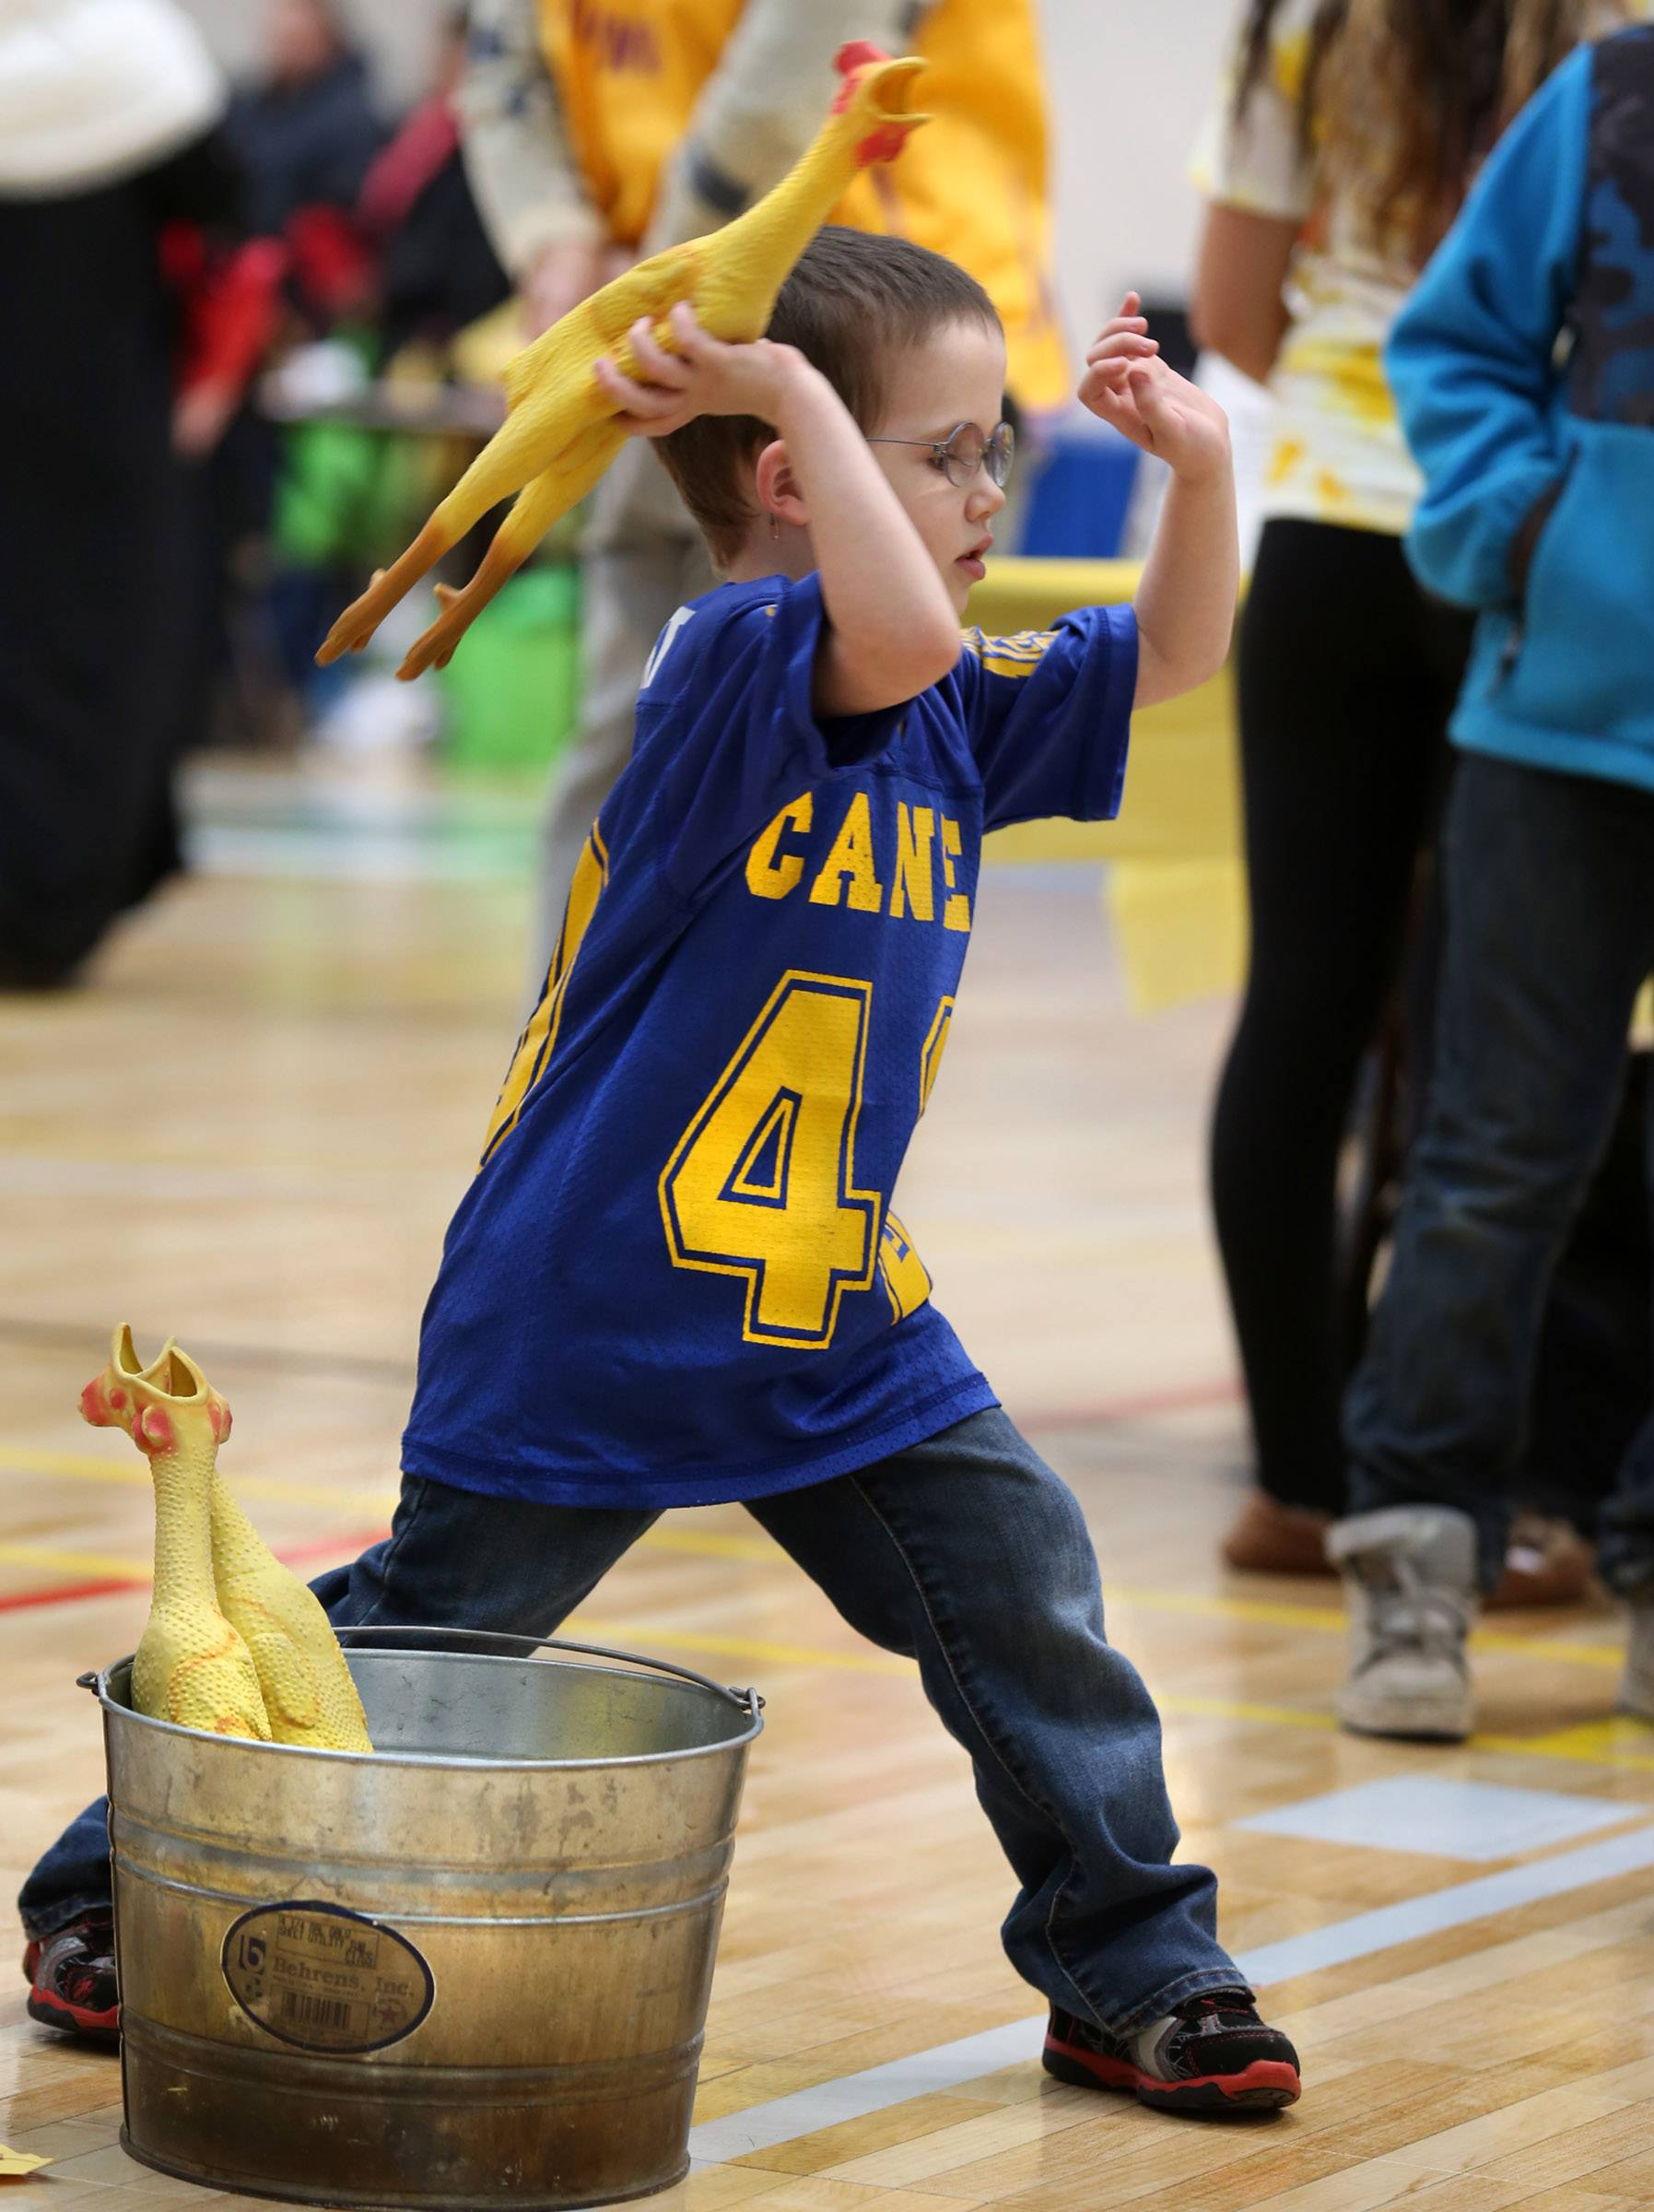 Matthew Weinert, 4, of Hanover Park, tosses a rubber chicken towards a basketball hoop at the Kids at Hope Community Resource Fair at Hanover Park's Community Center Gym on Saturday.